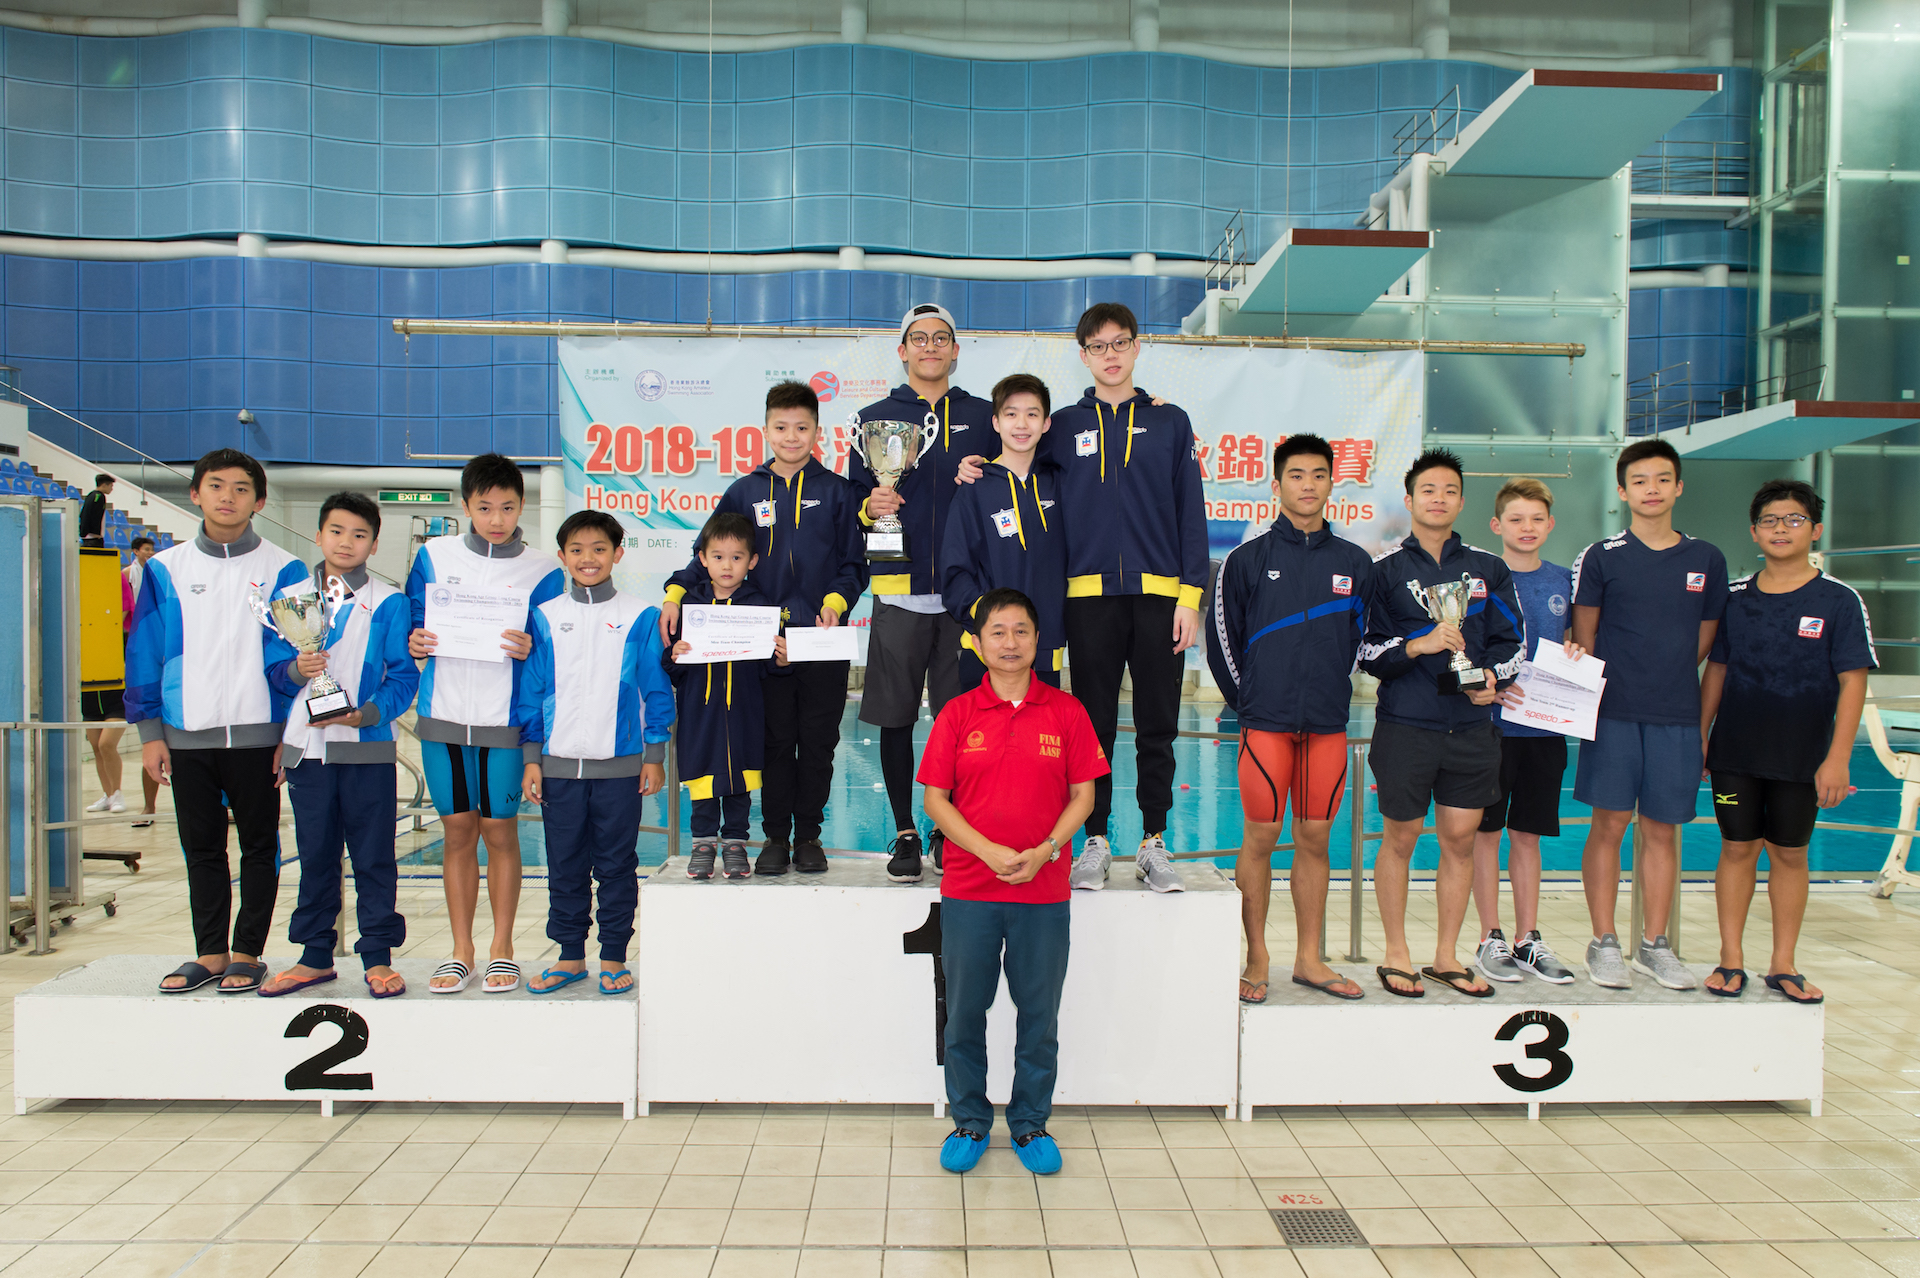 Win Tin Swimming Club - 2018 LCC 5